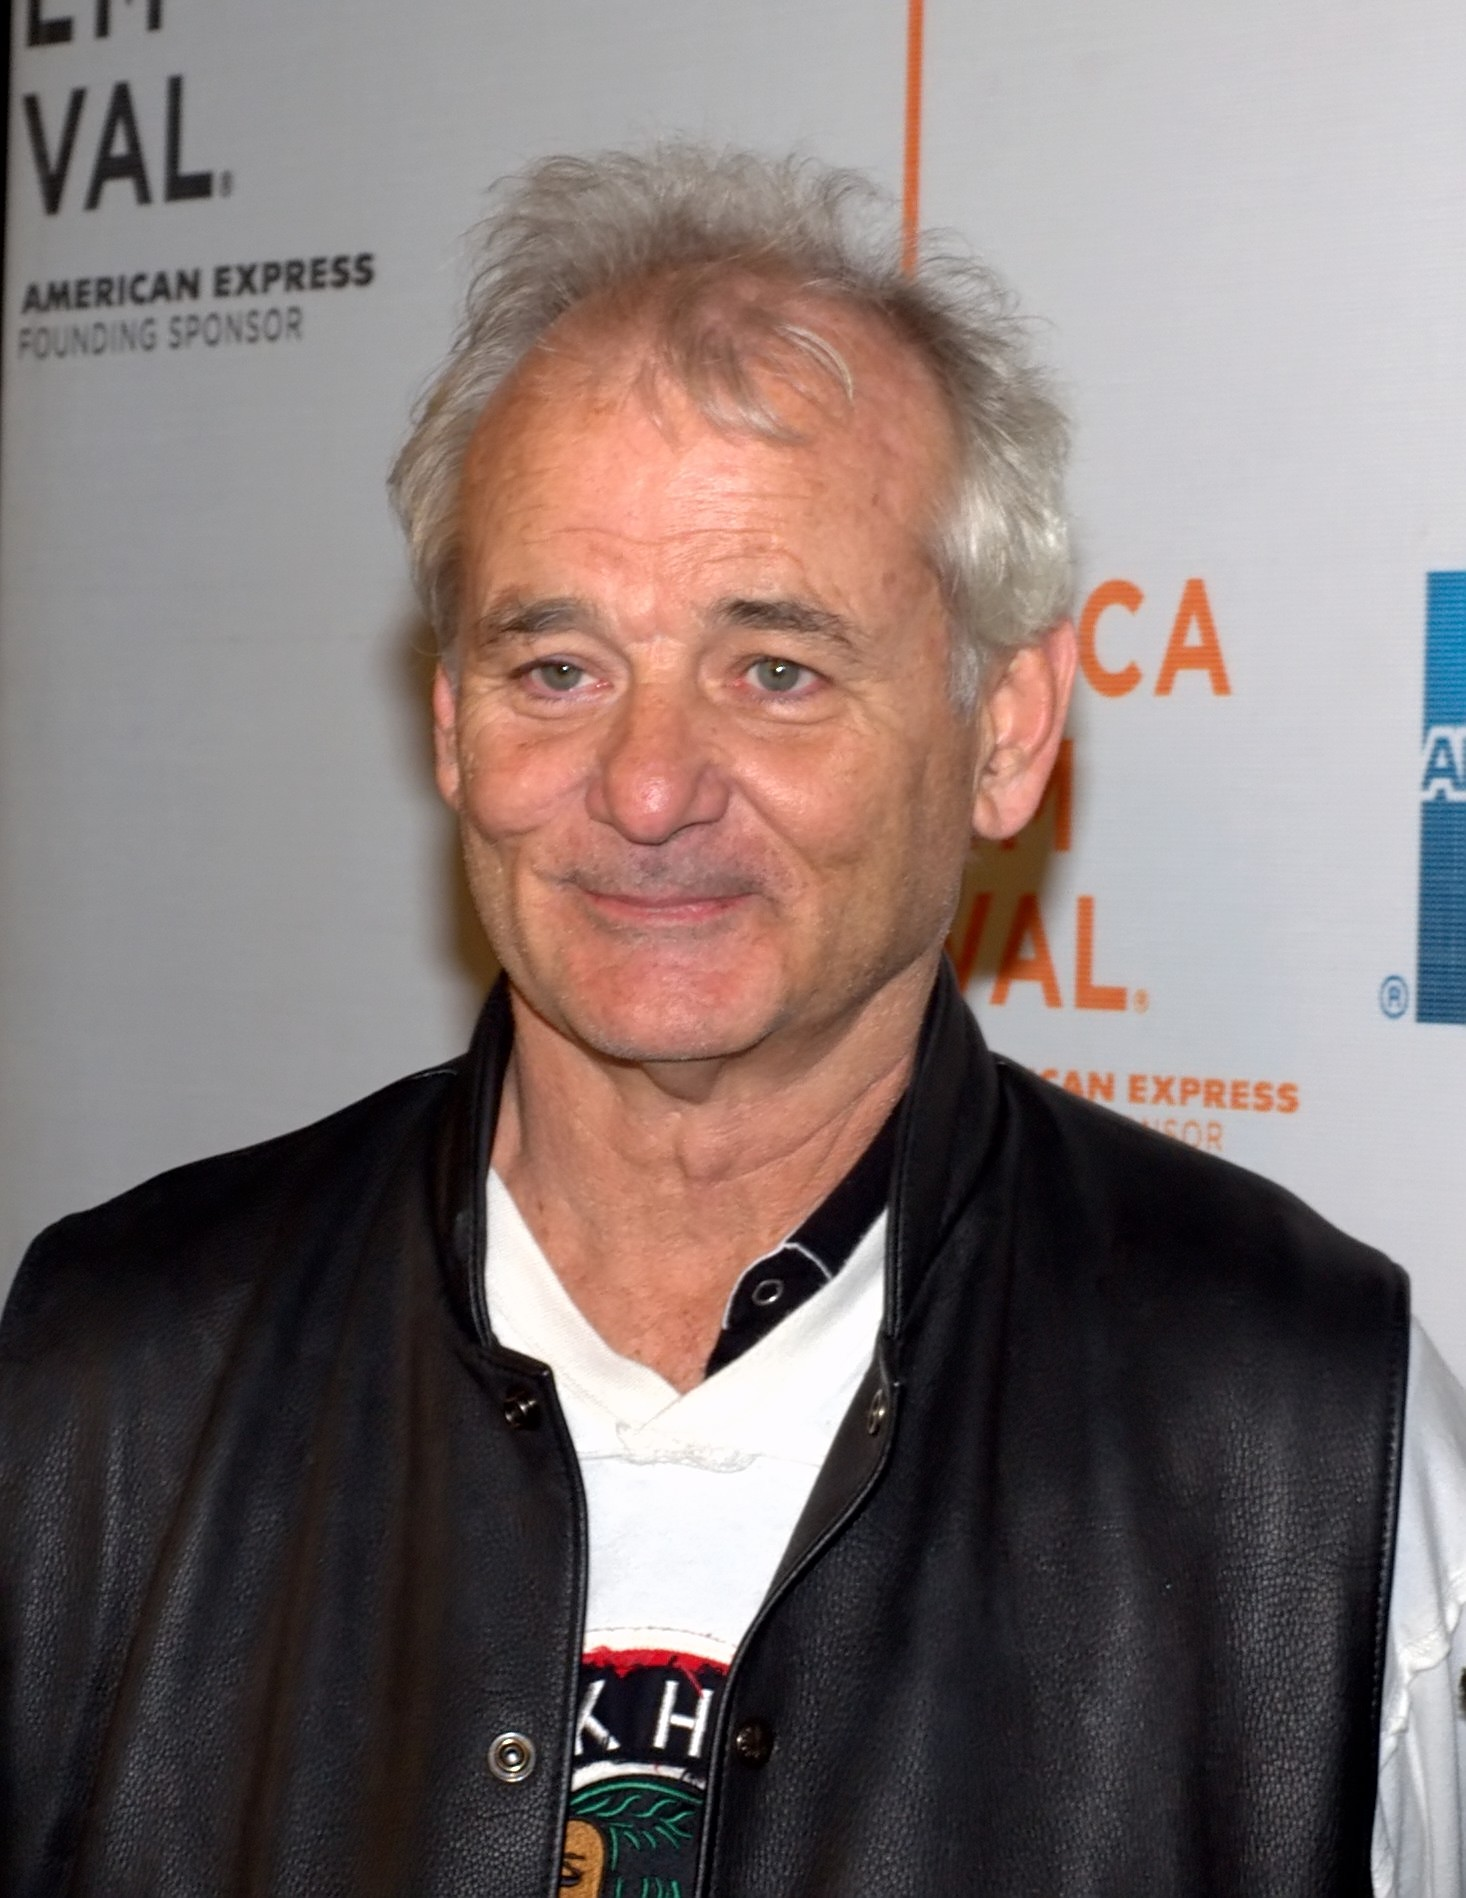 Bill_Murray_by_David_Shankbone.jpg